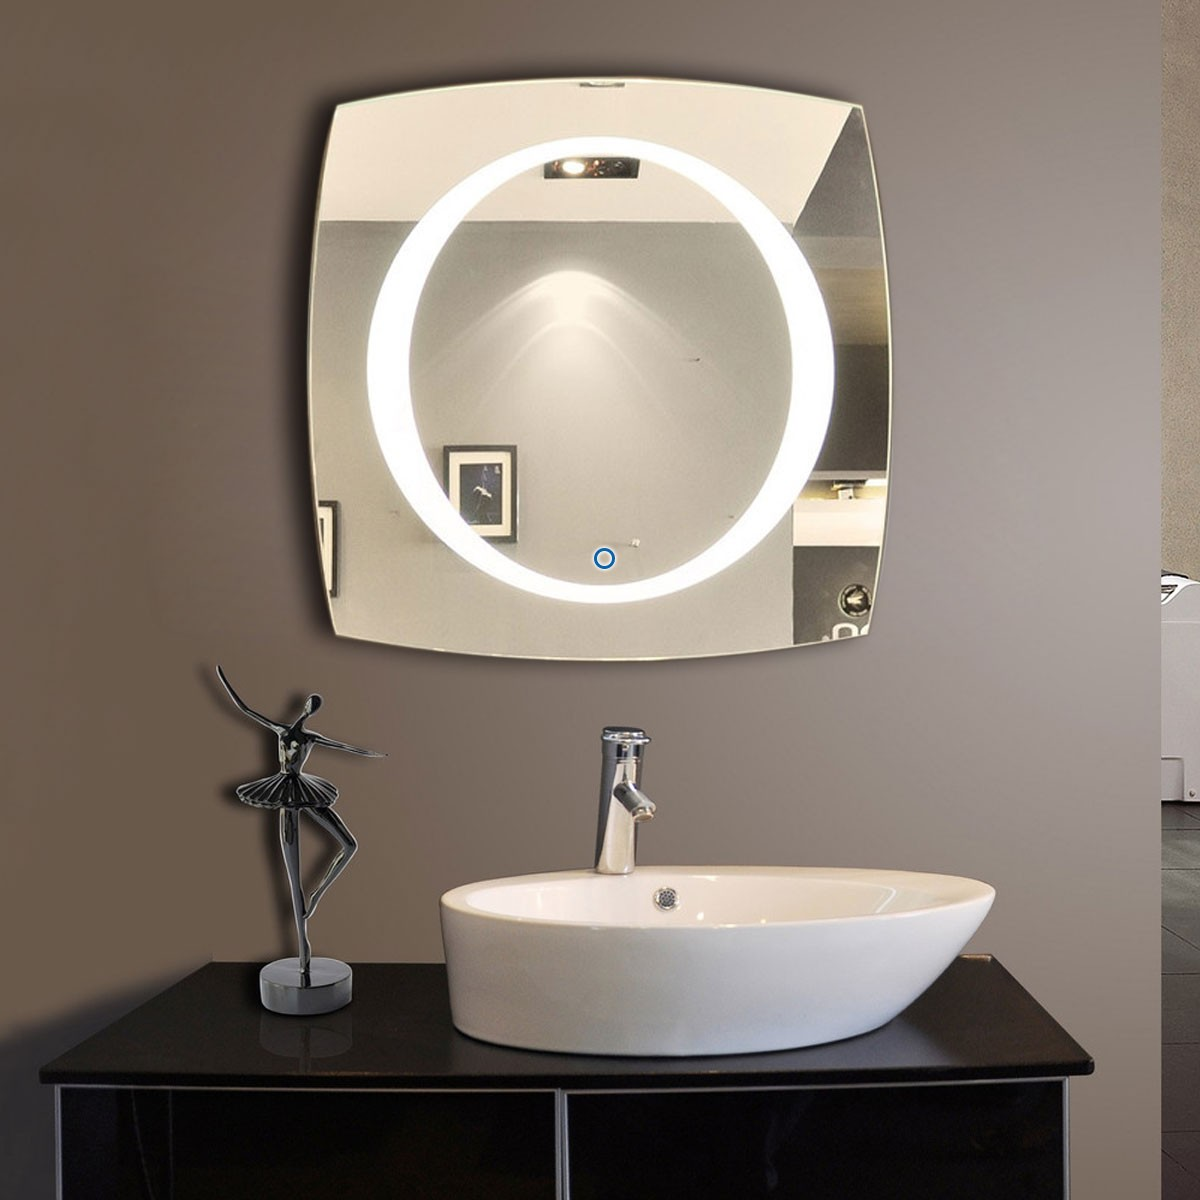 40 x 40 po miroir led salle de bain vertical avec l. Black Bedroom Furniture Sets. Home Design Ideas